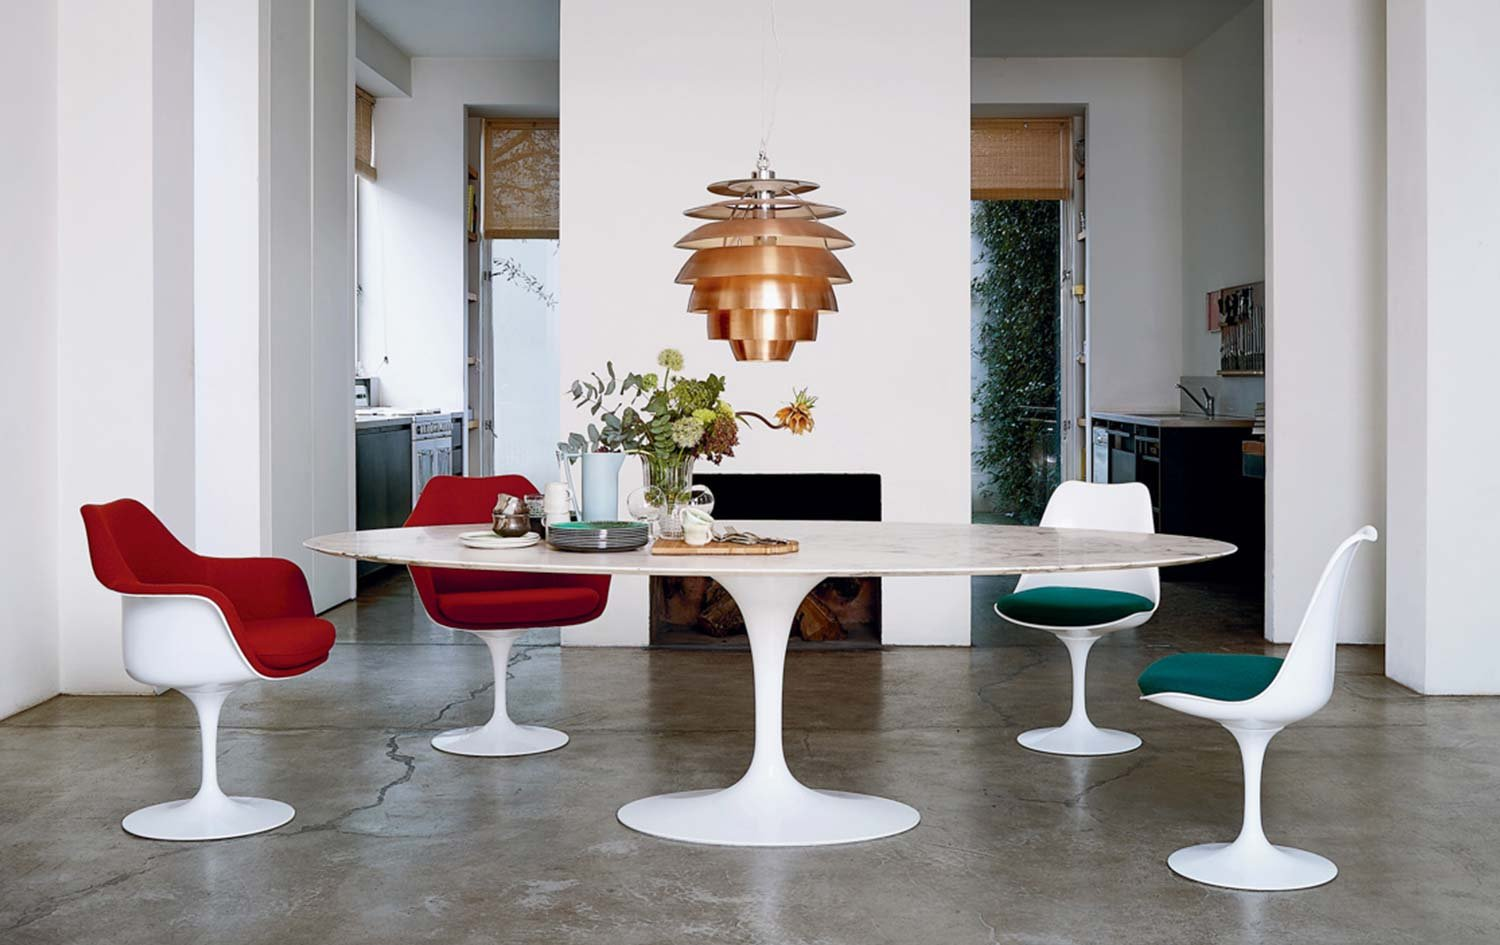 NYC furniture store - Knoll